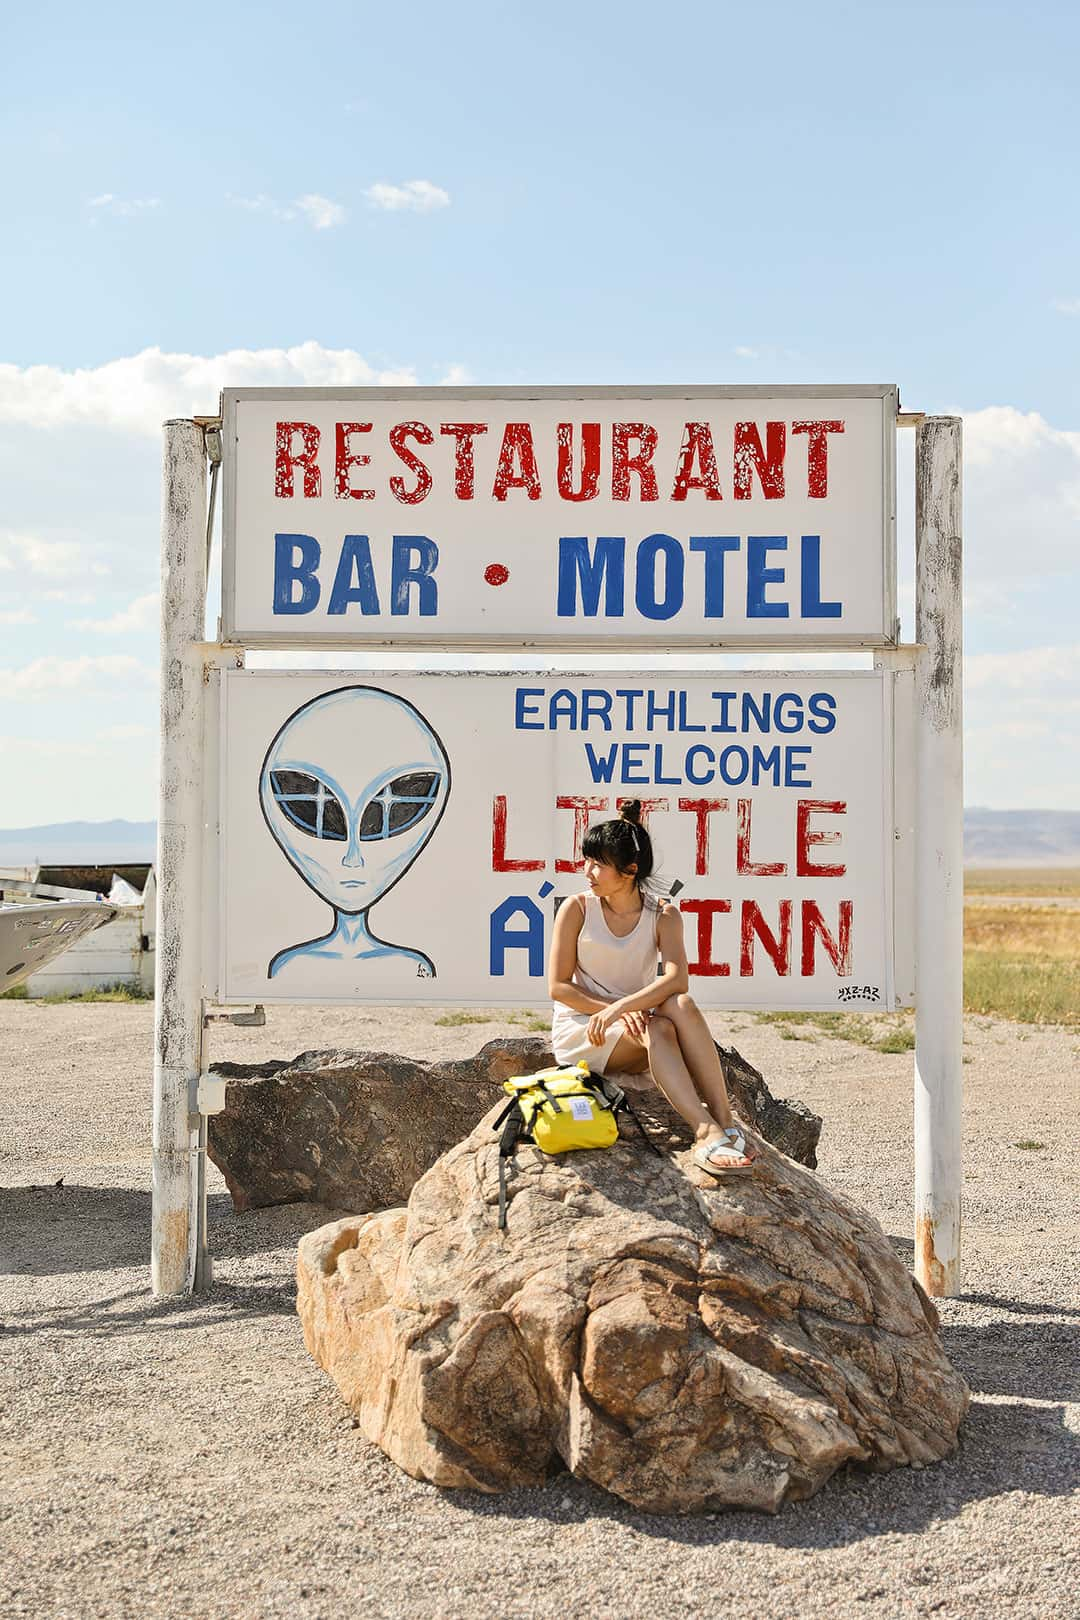 Rachel NV Hotel - Little Ale Inn on the Extraterrestrial Road Trip